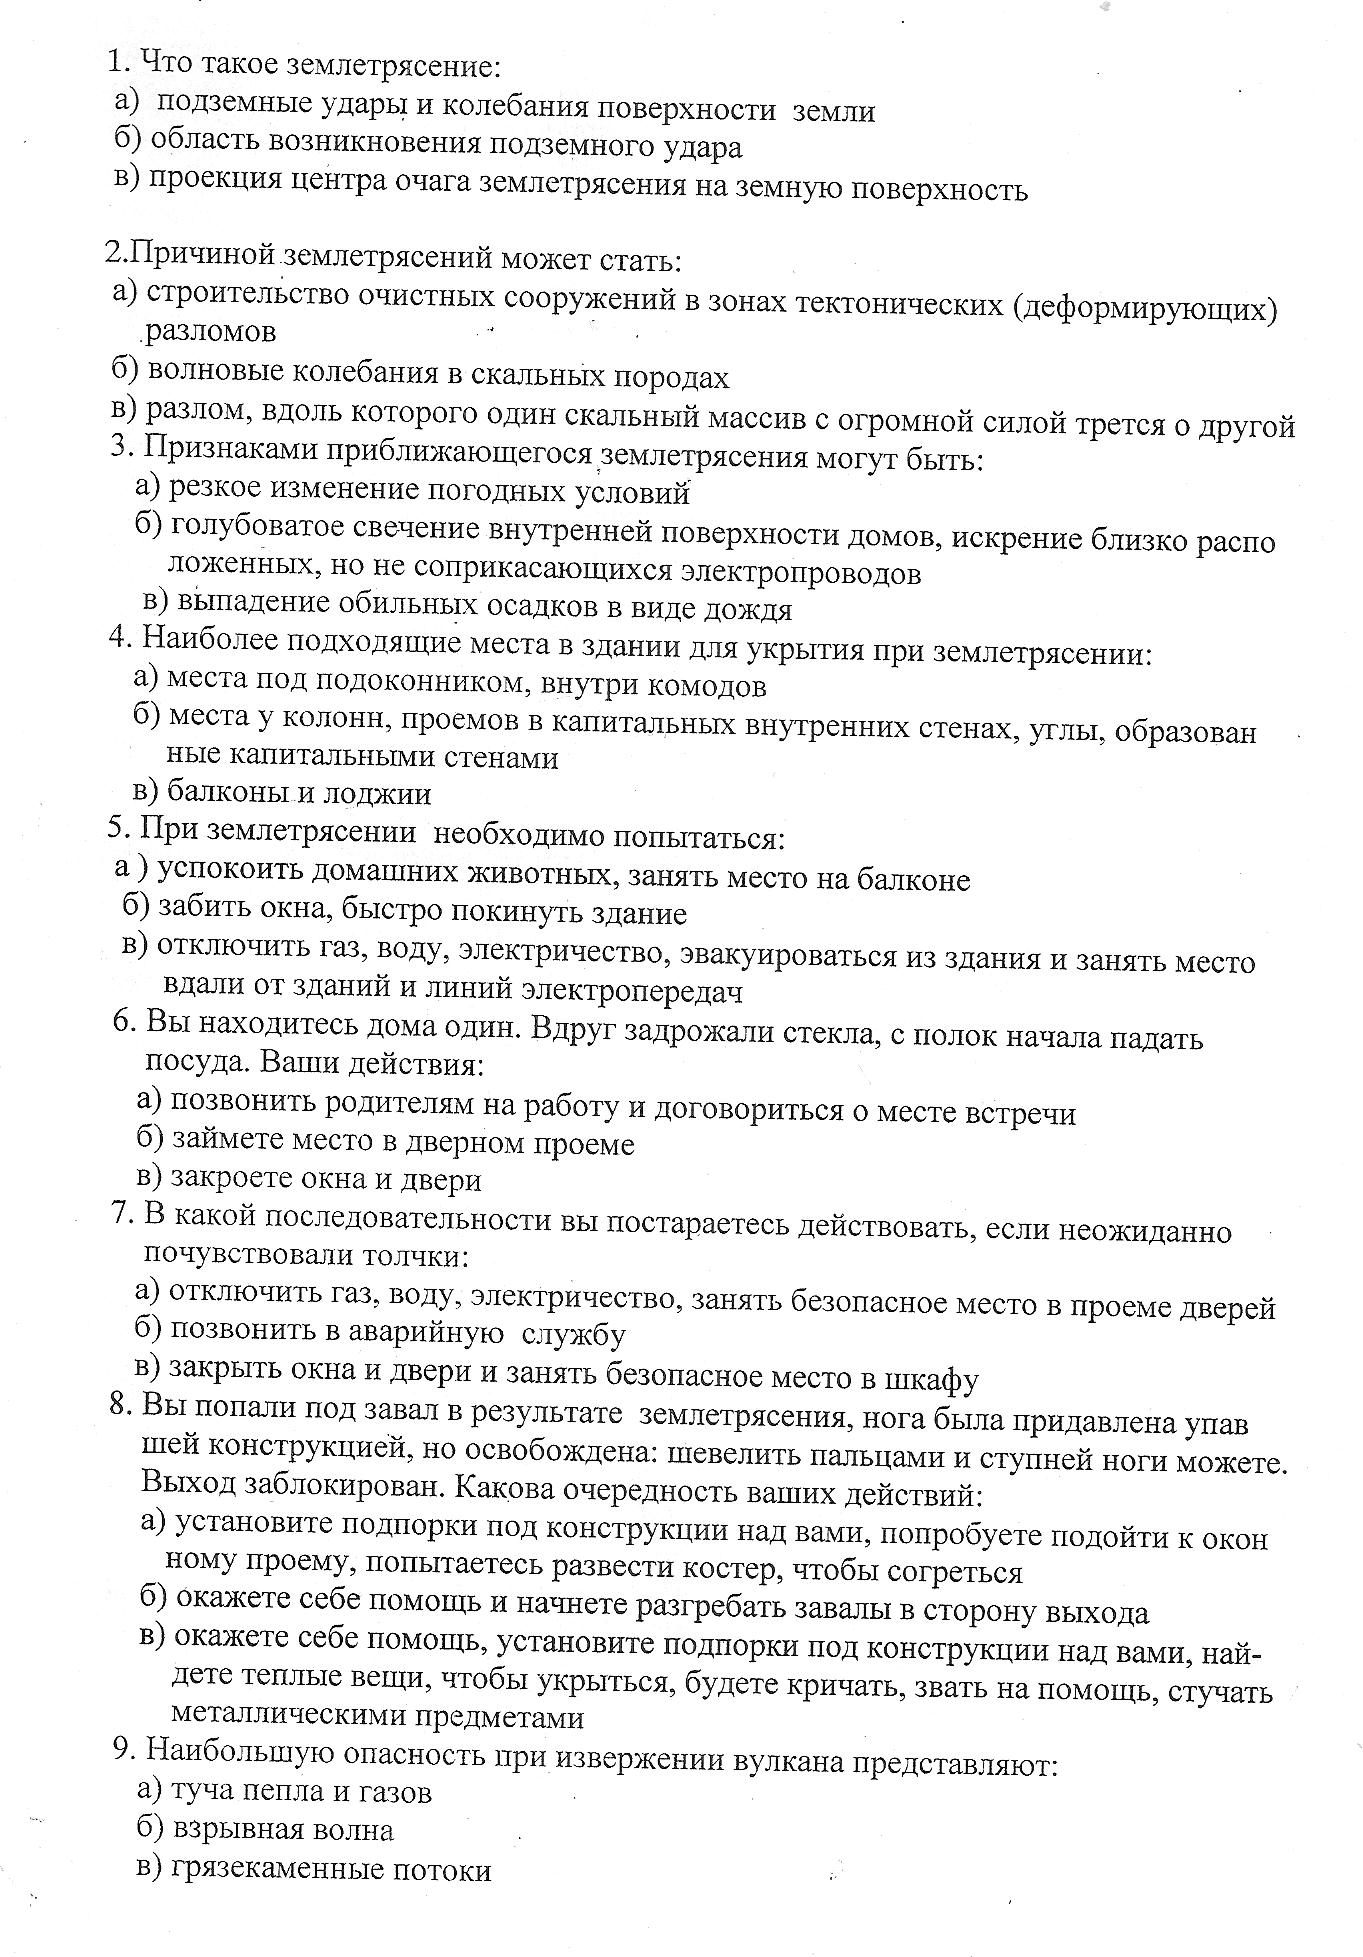 C:\Users\Наталья\Pictures\2015-05-12\003.jpg